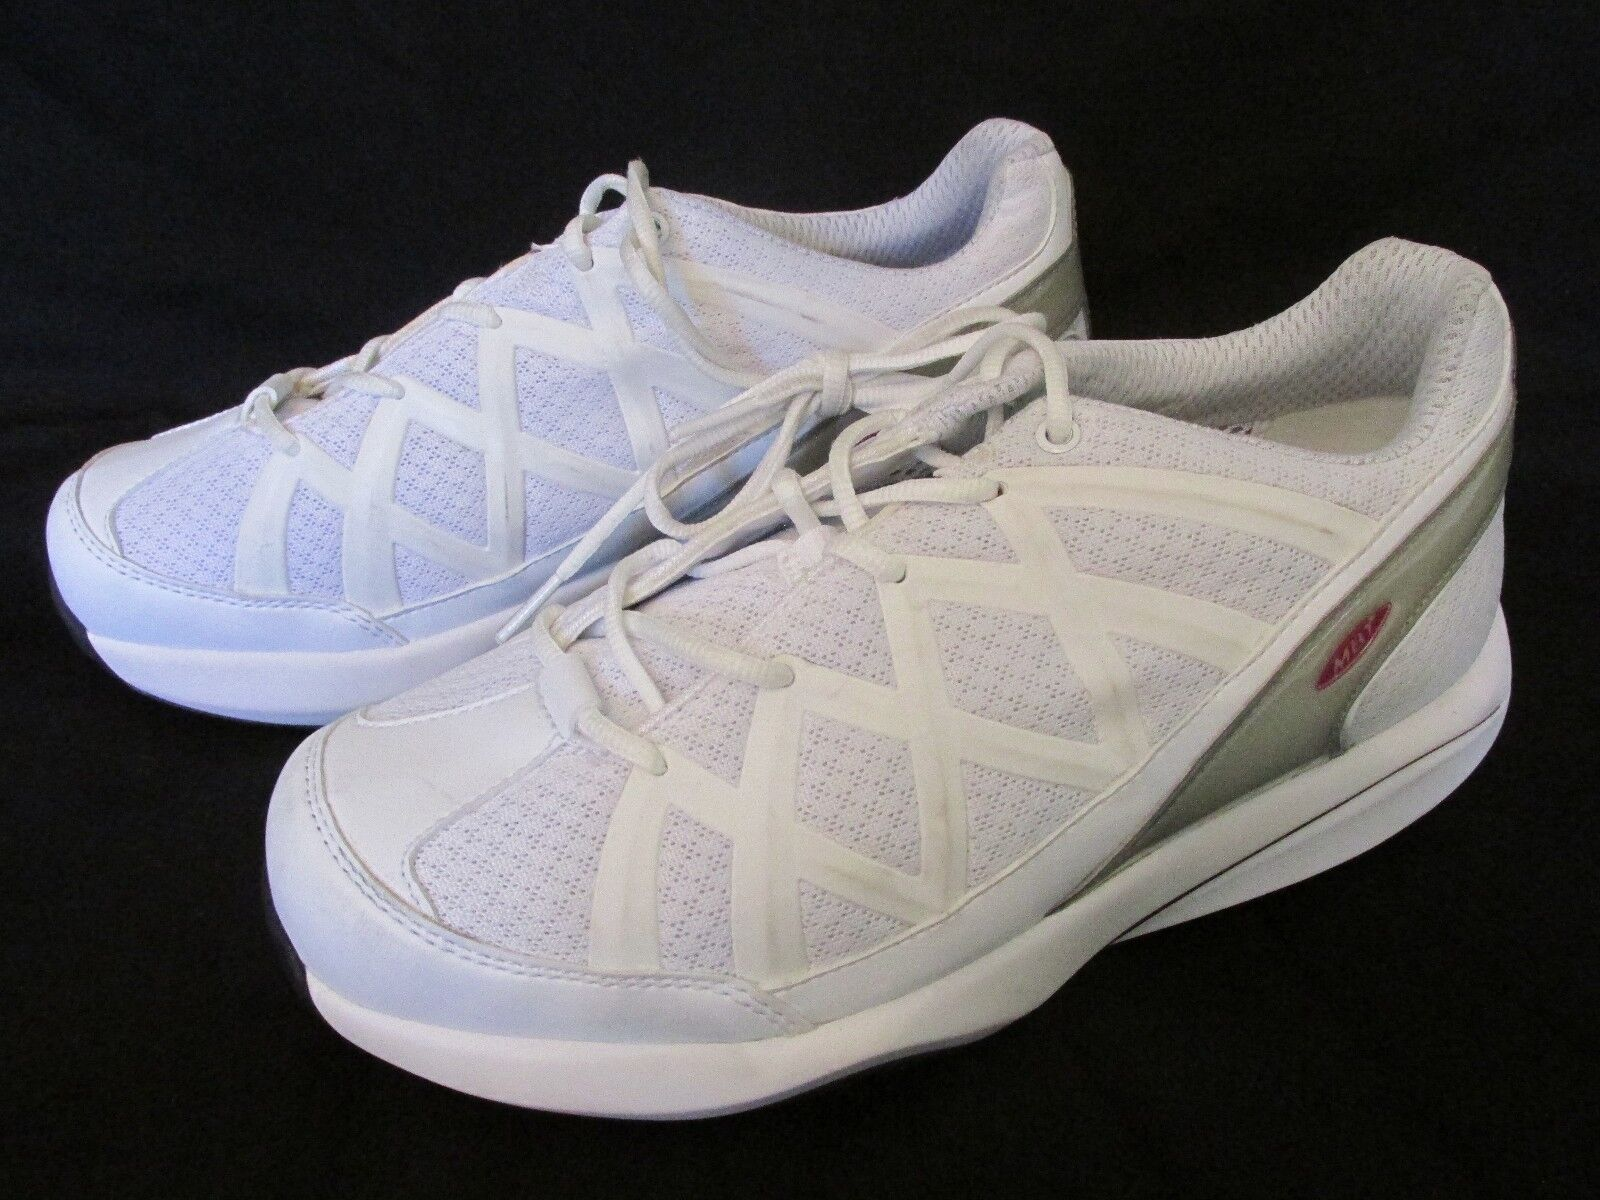 Women's Masai Barefoot Technology MBT Sport 2 Rocker Walking Toning Shoes 7-7.5